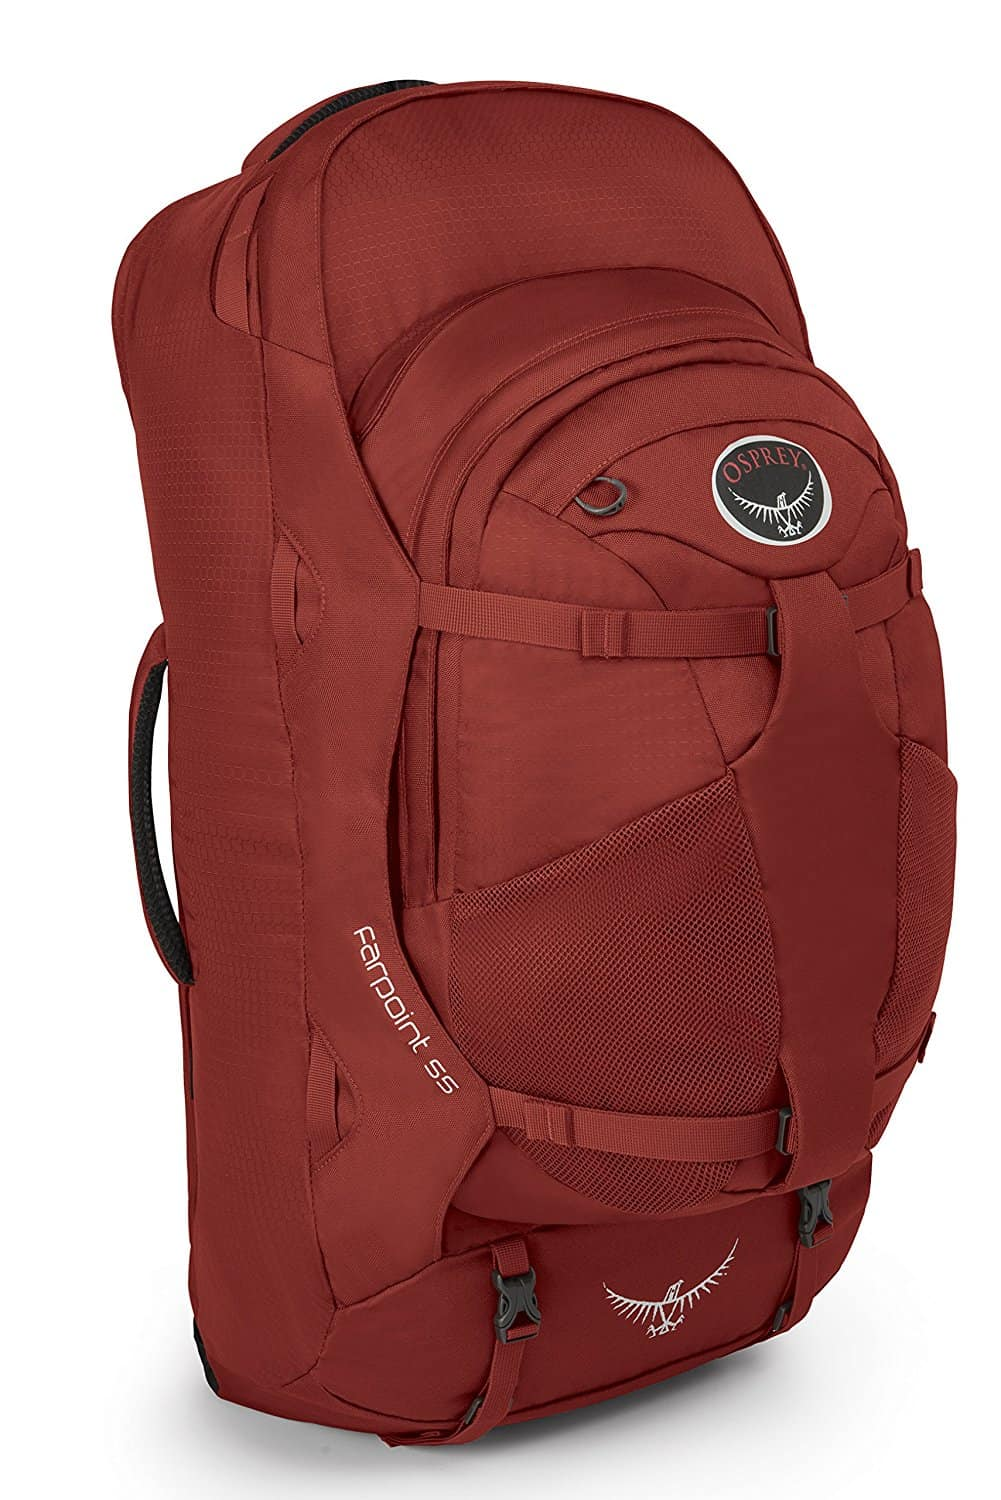 fccf13c12b Top Travel Backpack 2019 Reviews. Osprey Packs Farpoint 55 Travel Backpack  Review